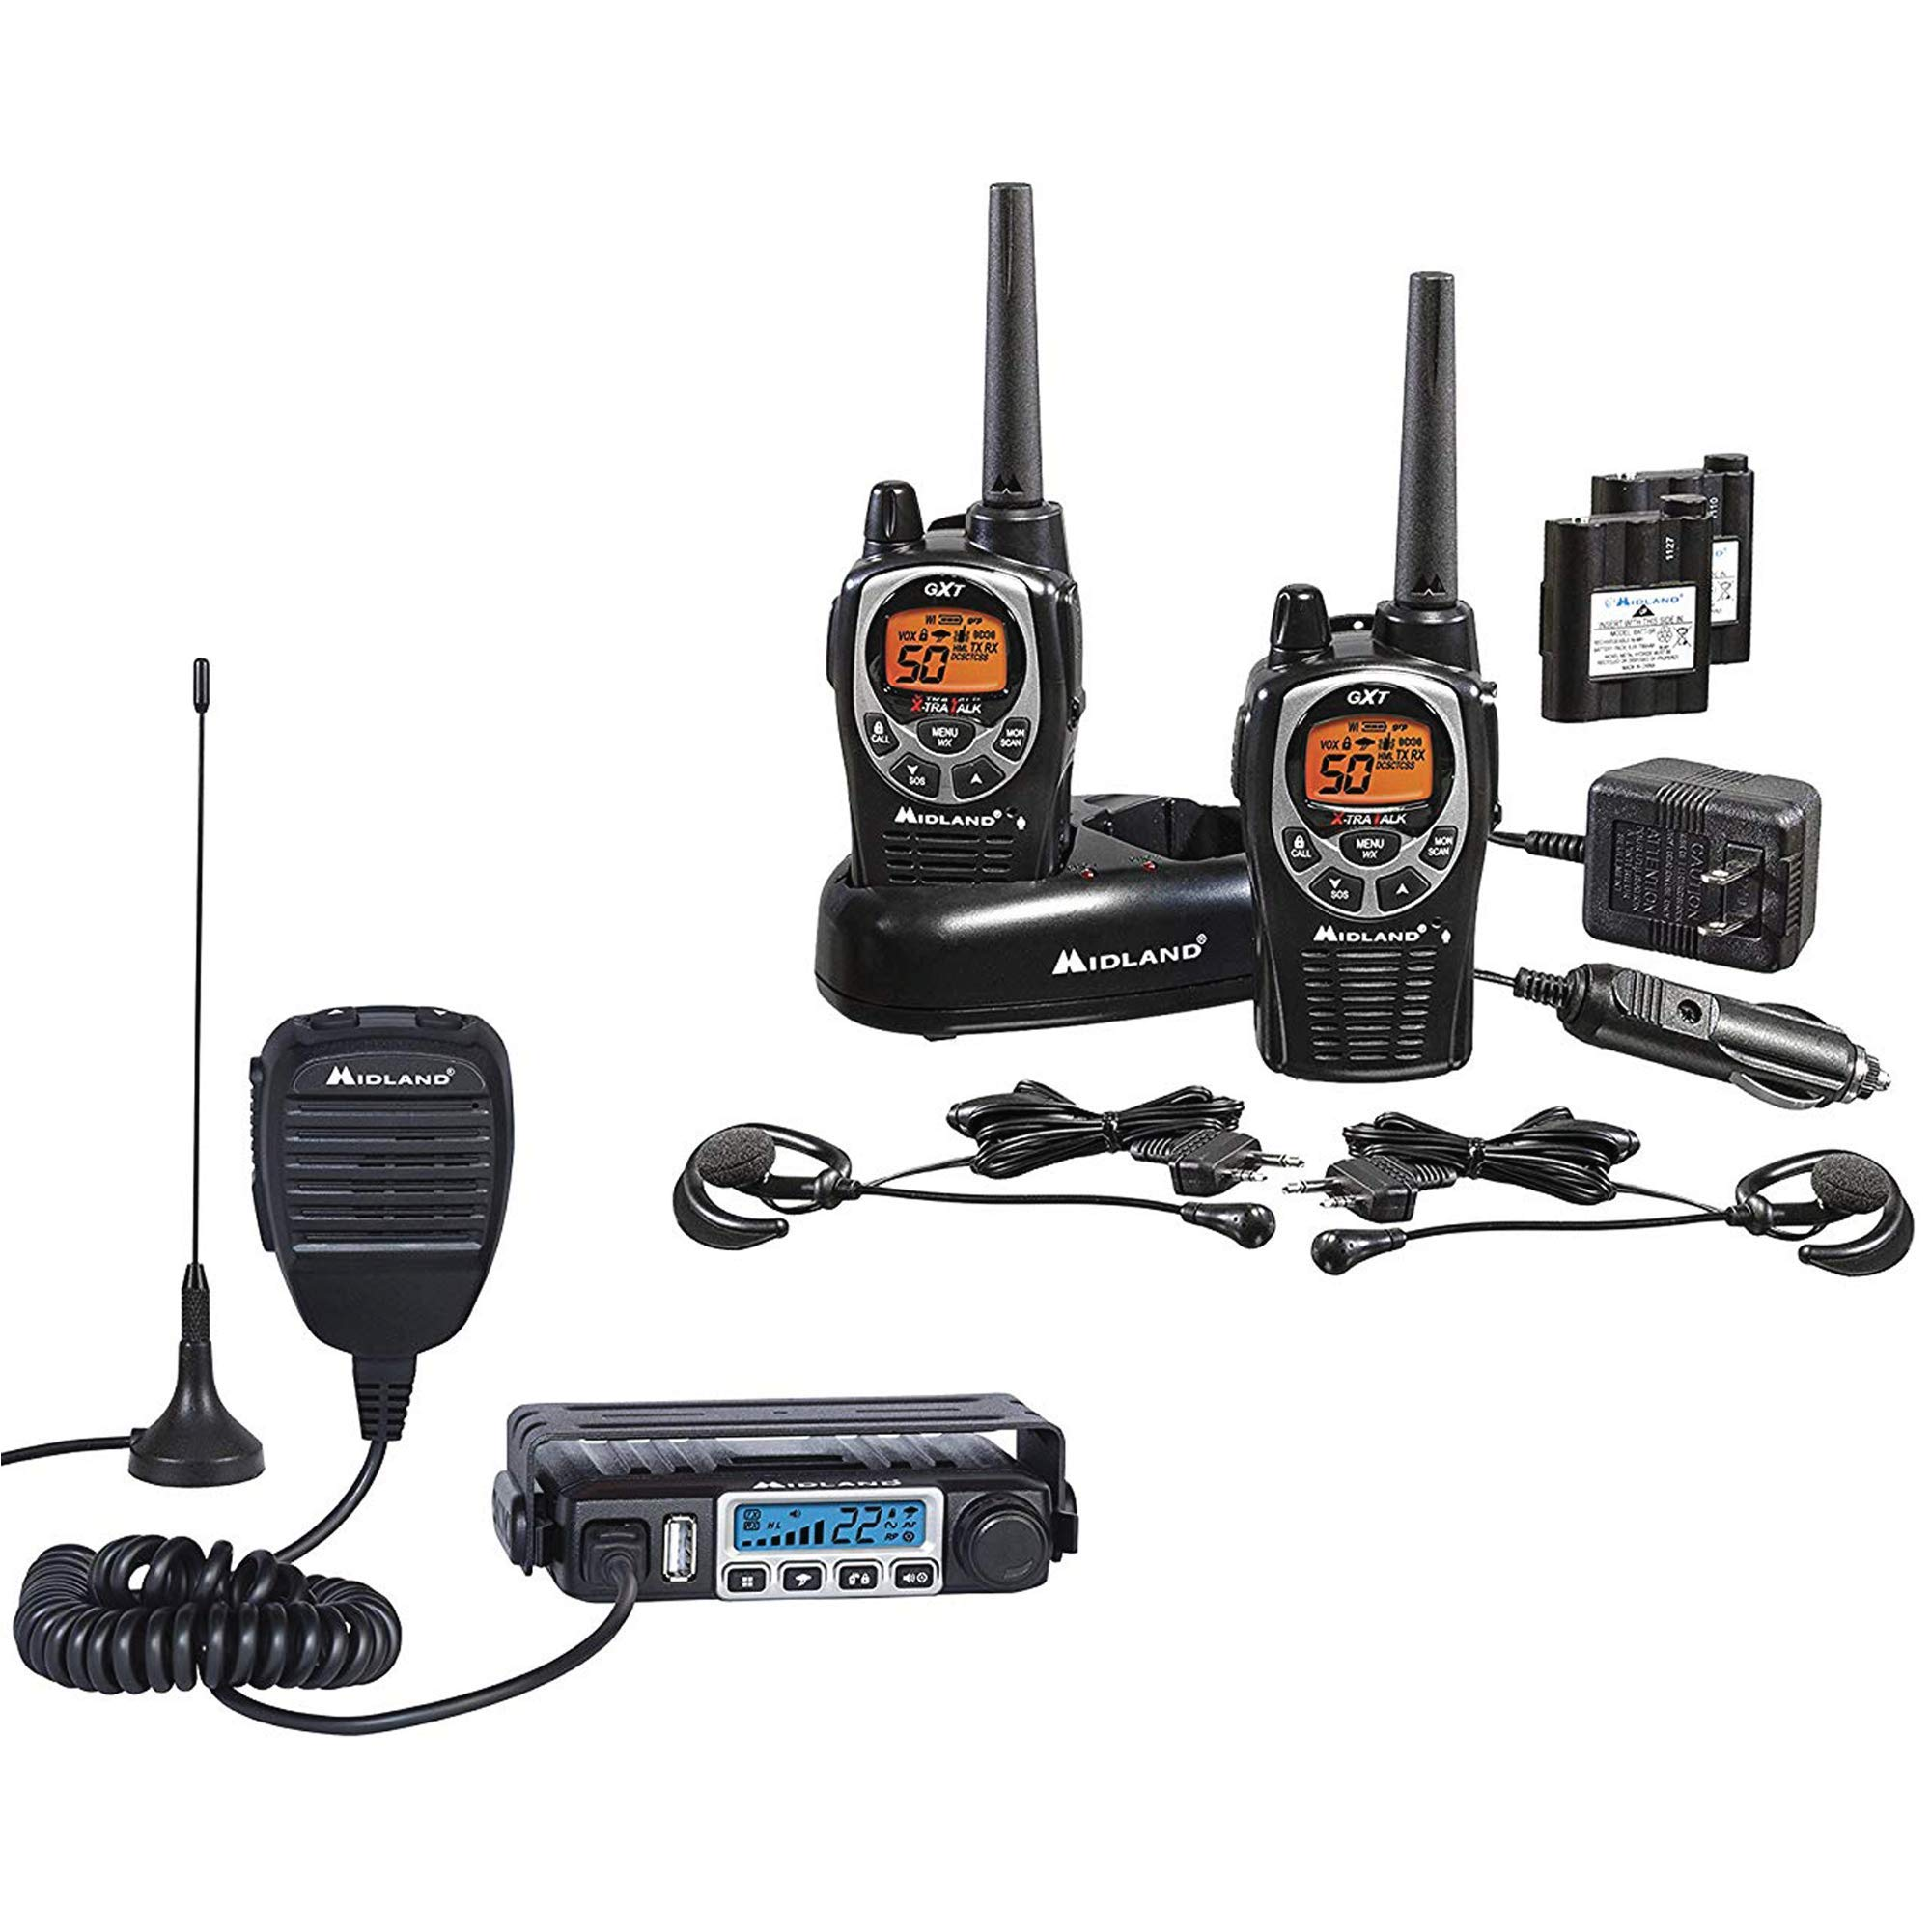 Midland - MXT115 & GXT1000 Bundle - MicroMobile Two-Way Radio w/External Magnetic Mount Antenna & GXT1000 Two-Way Radio - Up to 36 Mile Range Water Resistant Walkie Talkies (Pair Pack)(Black/Silver) by Midland